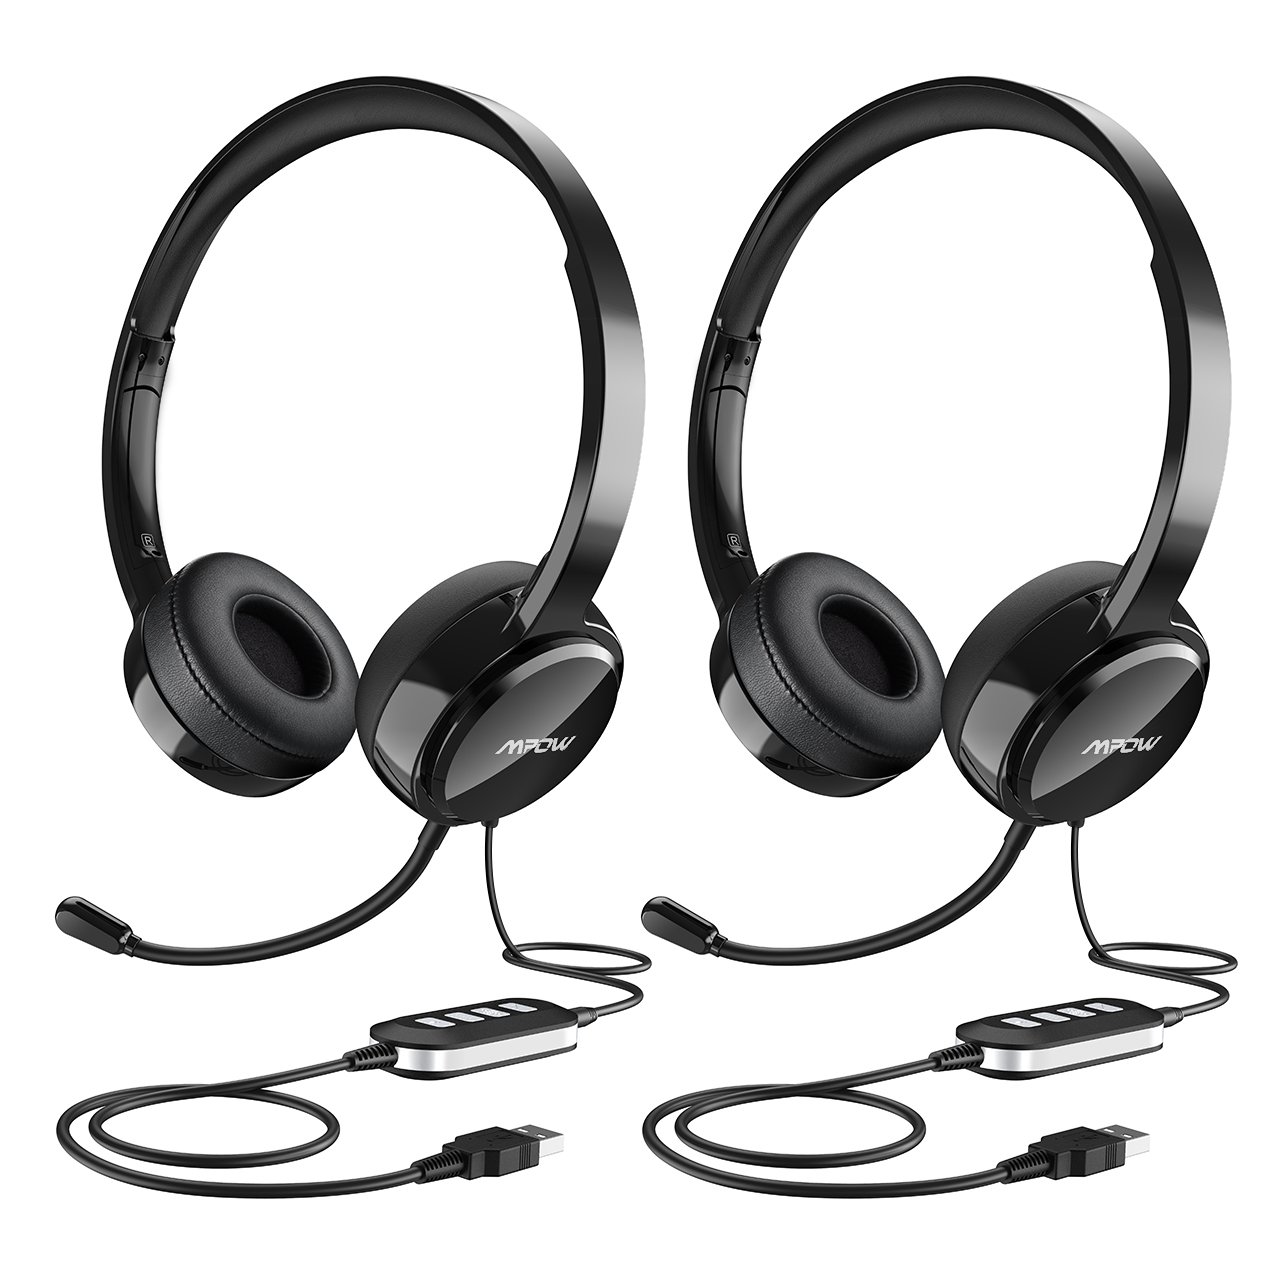 Mpow (2-Pack) USB Headset/3.5mm Computer Headset with Microphone Noise Cancelling, Lightweight PC Headset Wired Headphones, Business Headset for Skype, Webinar, Phone, Call Center by Mpow